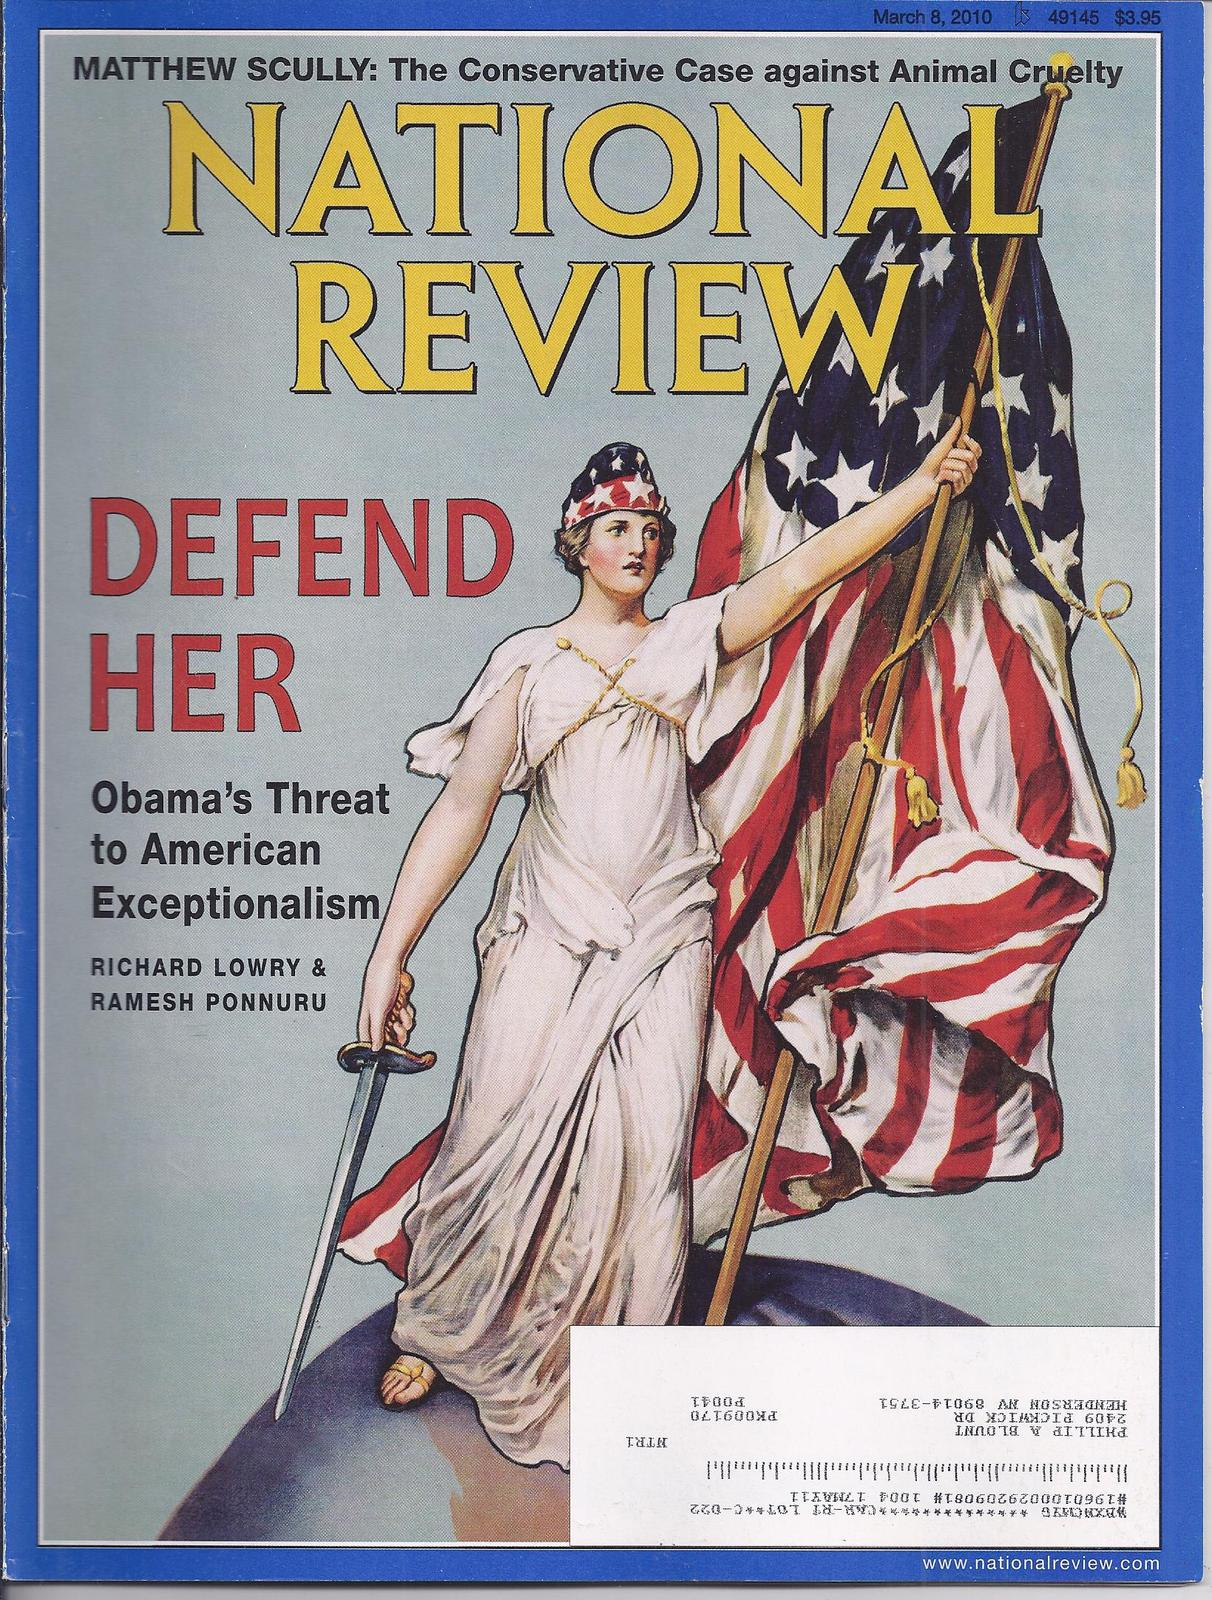 Primary image for NAVAL REVIEW Magazine Mar 2010: Obama's Threat to American Exceptionalism